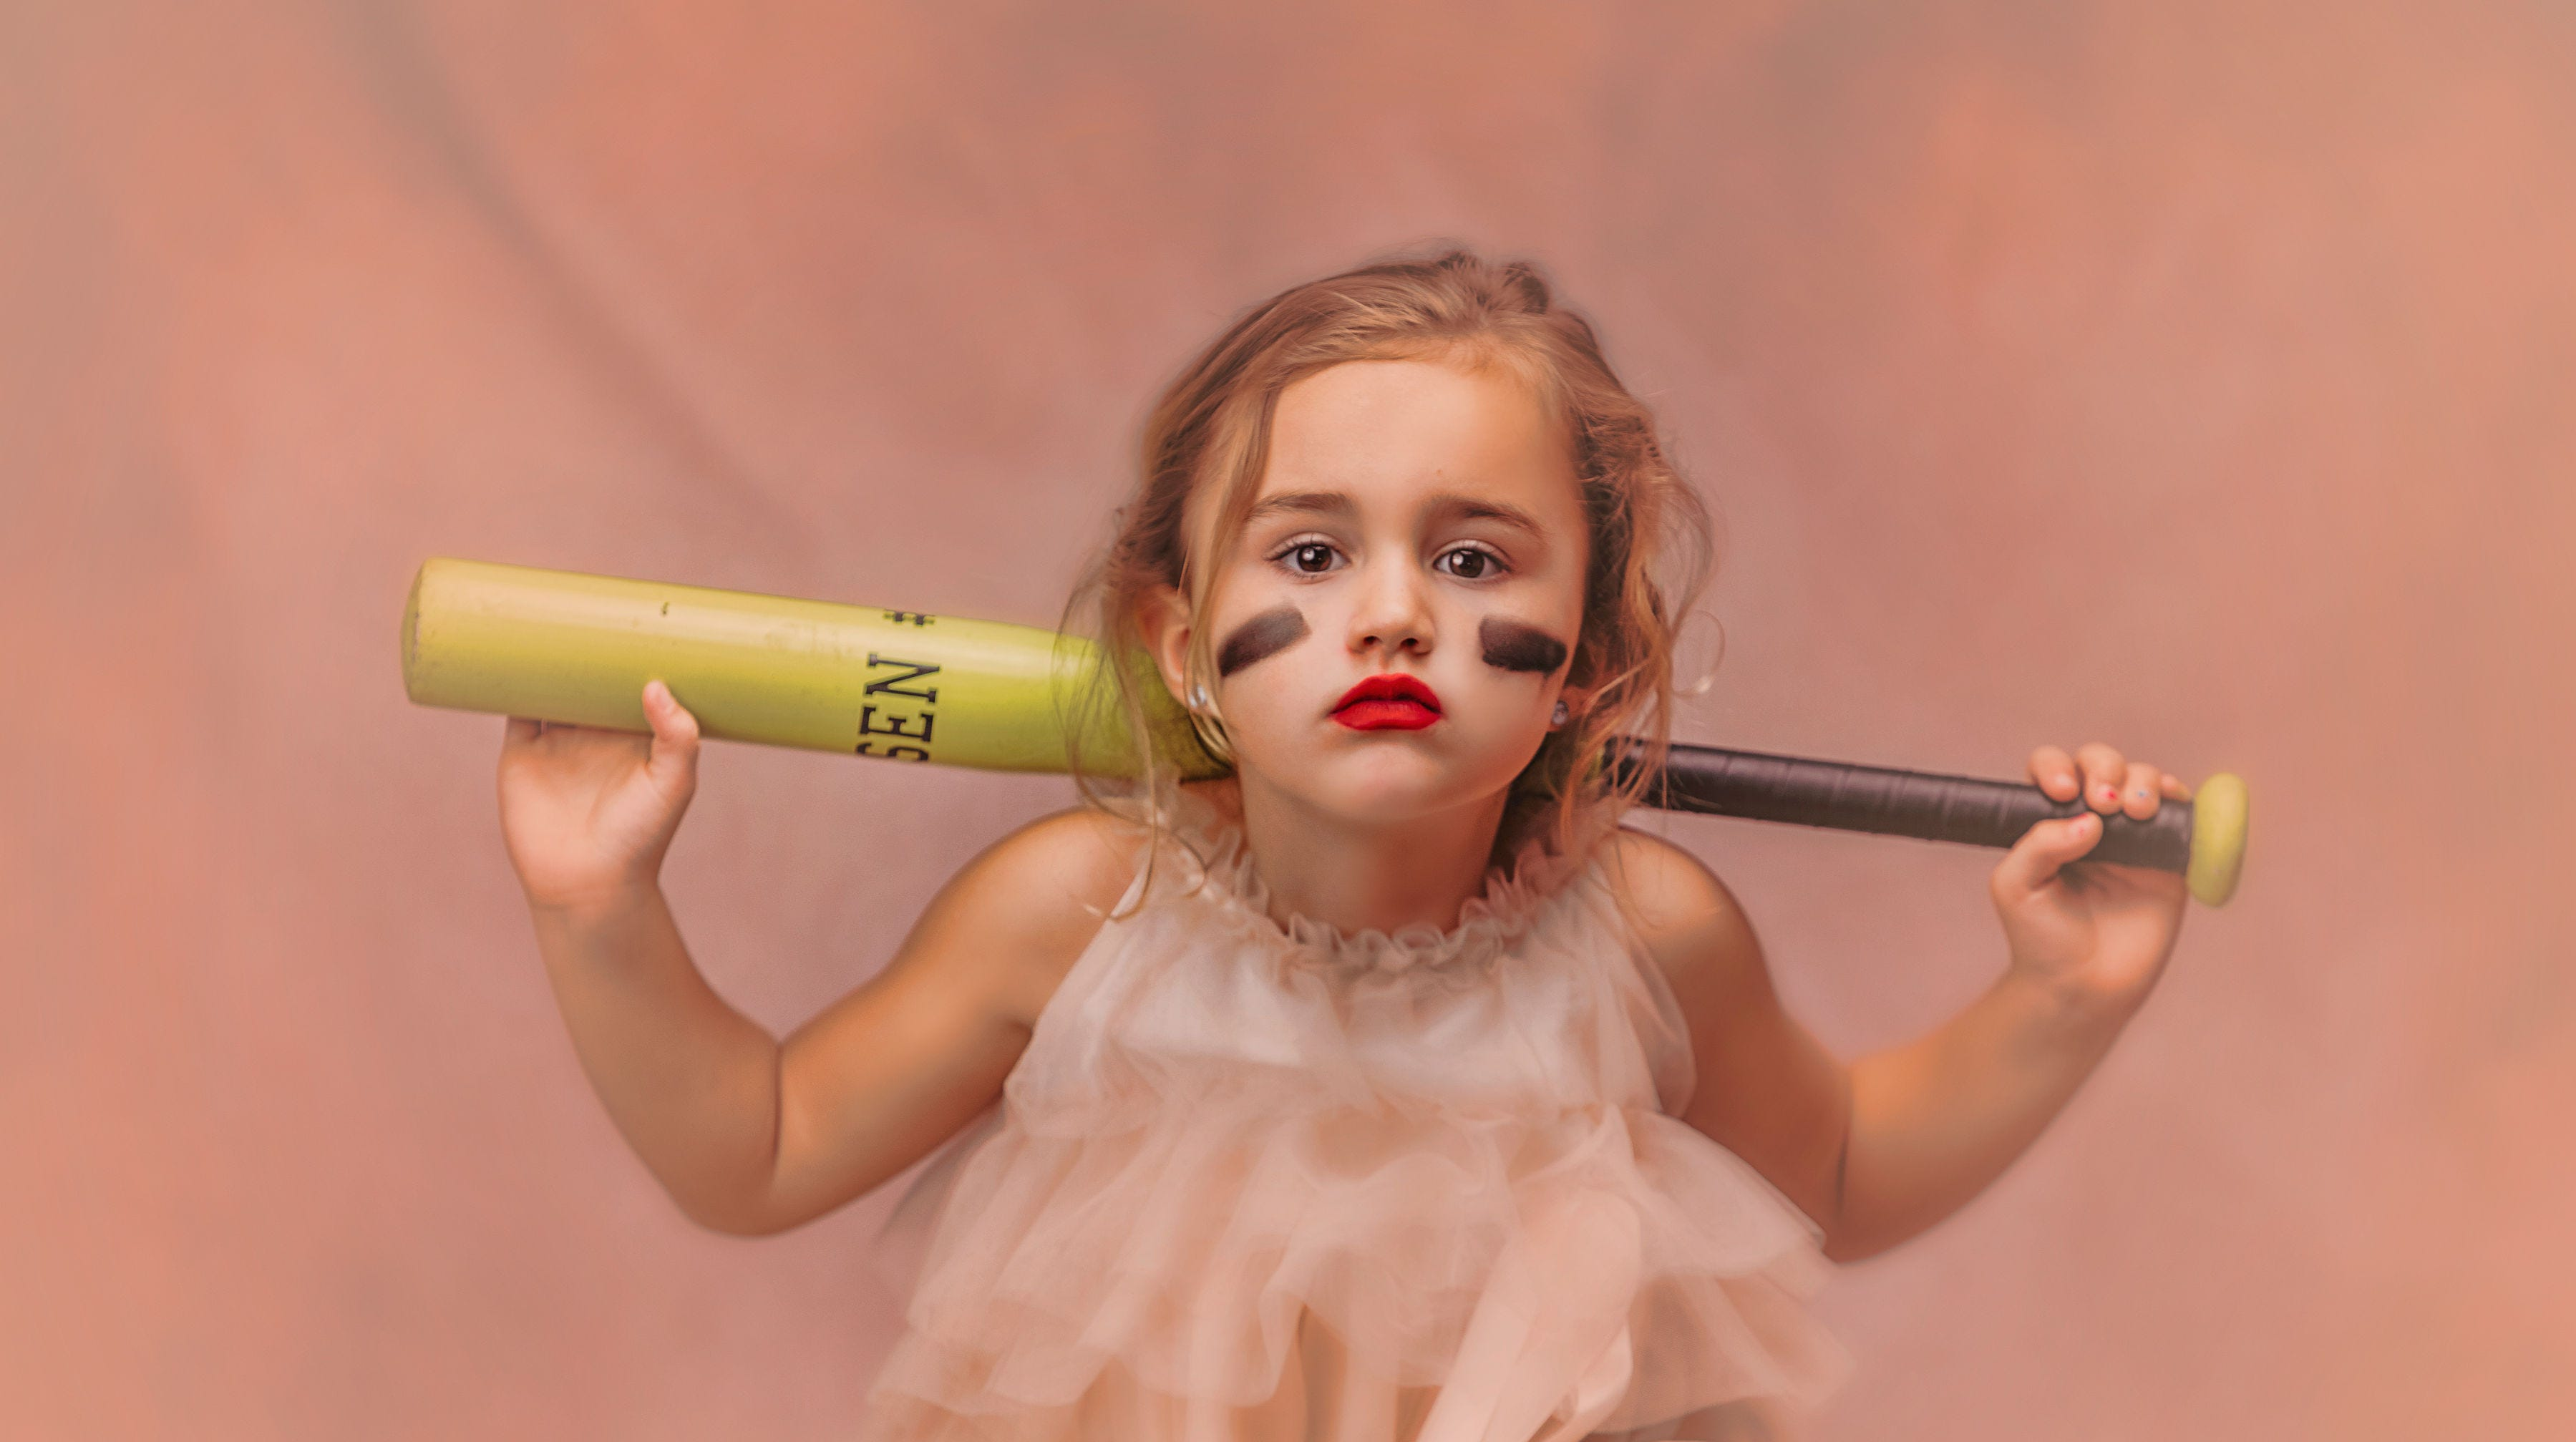 Mom's photo shoot says girls can be athletic and girly. 'Why does she have to choose?'